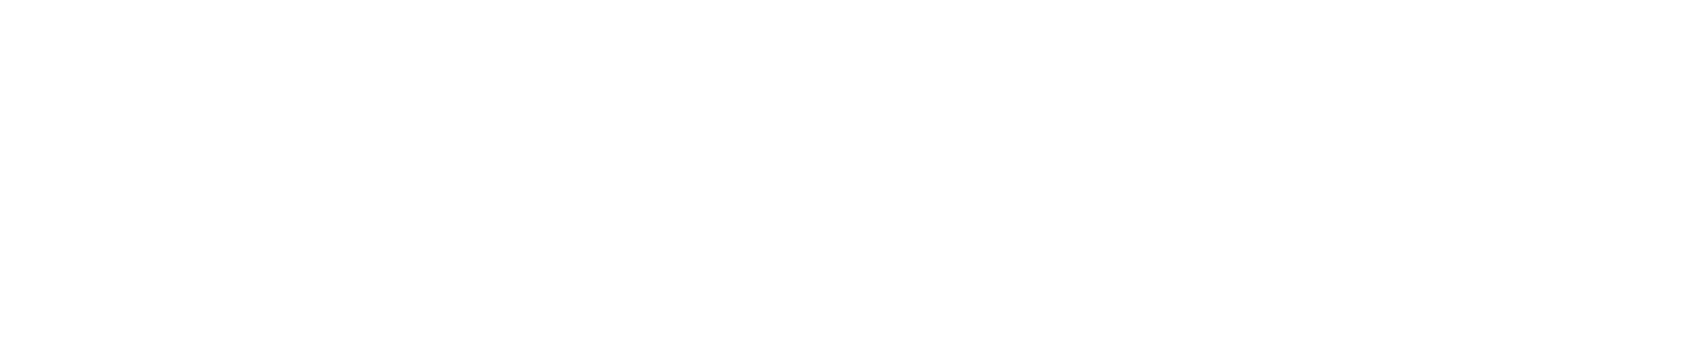 todopets